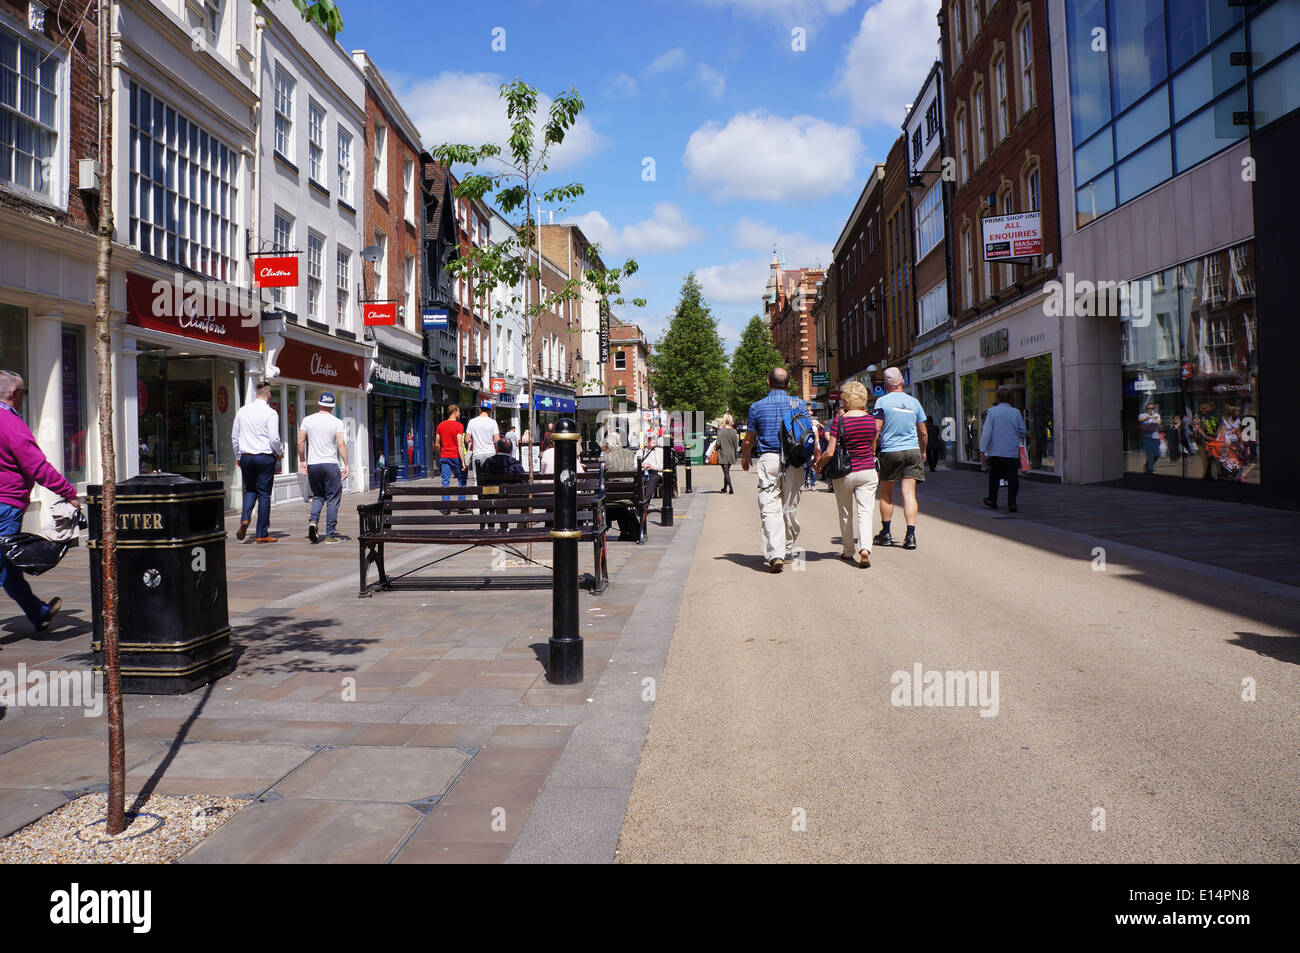 worcester city centre, uk - Stock Image